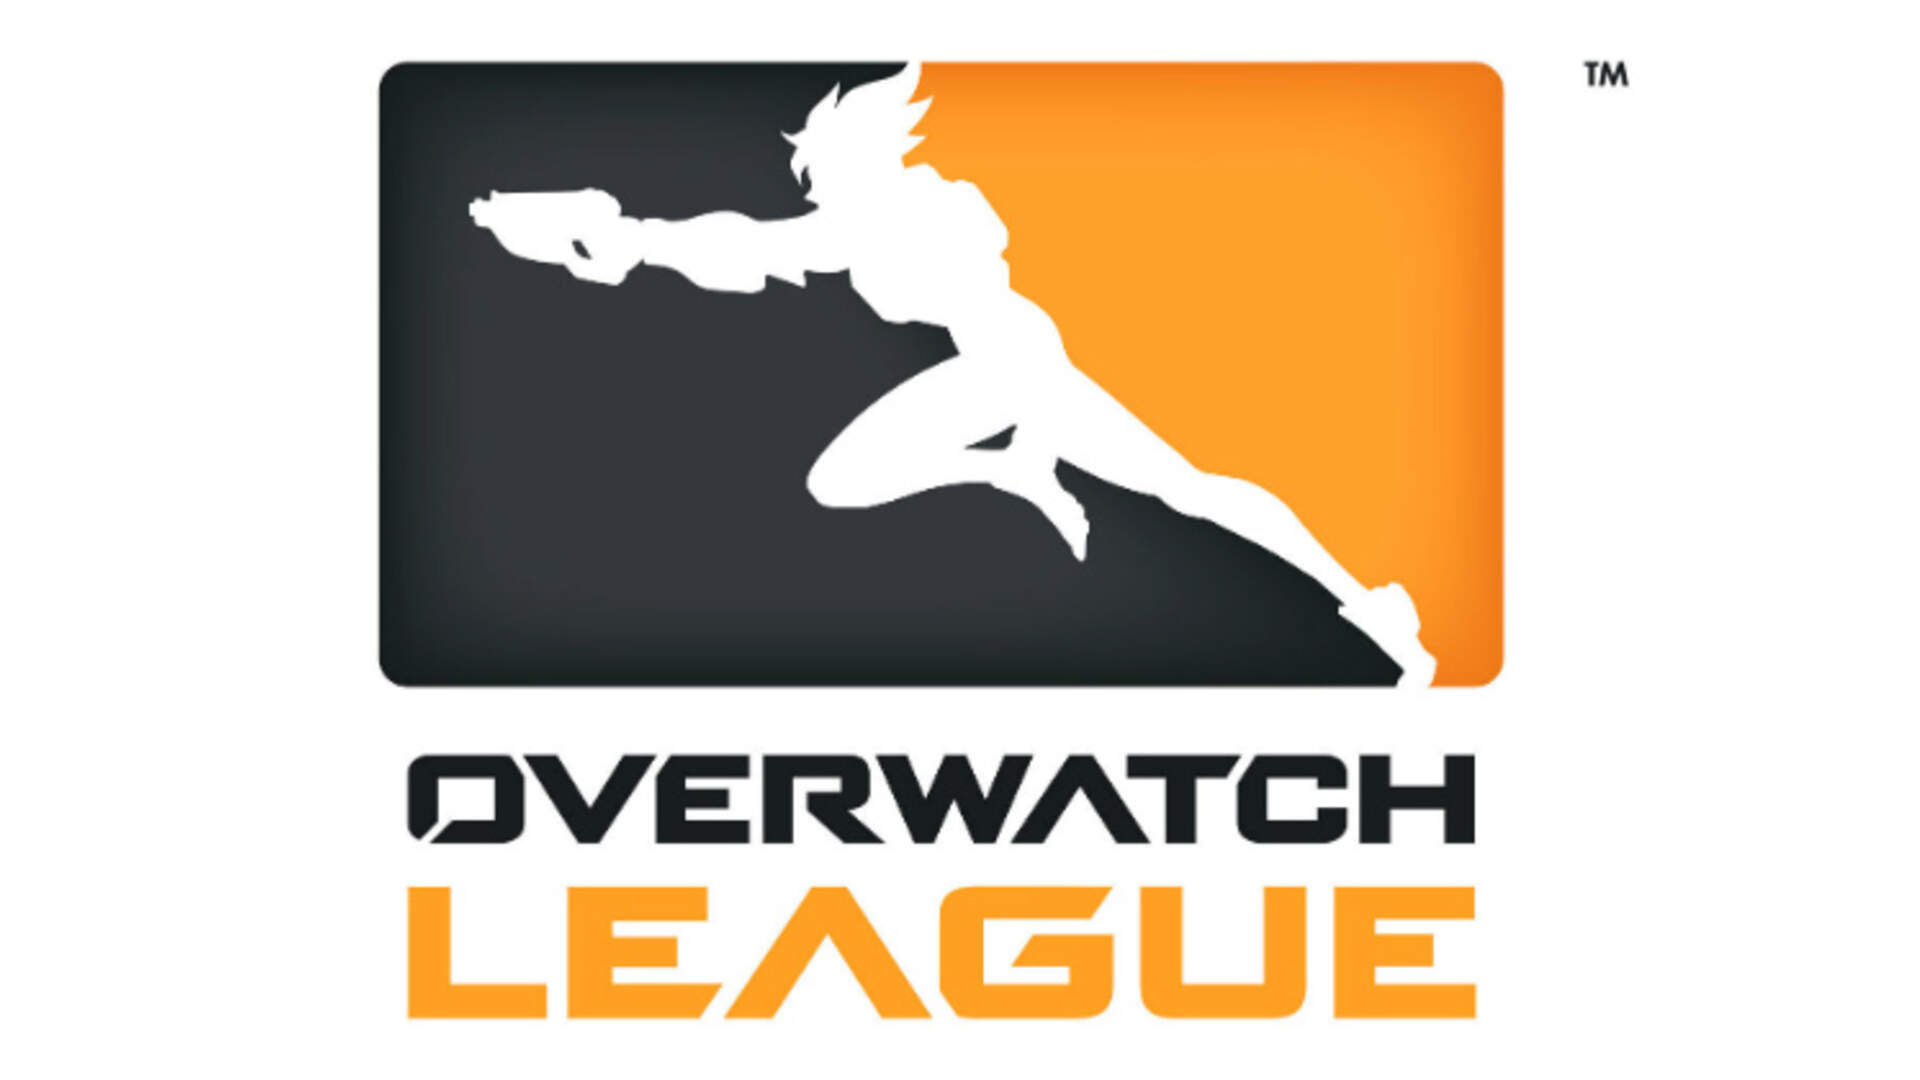 The Overwatch League Signs Three More US Teams, Official League Games Start in January